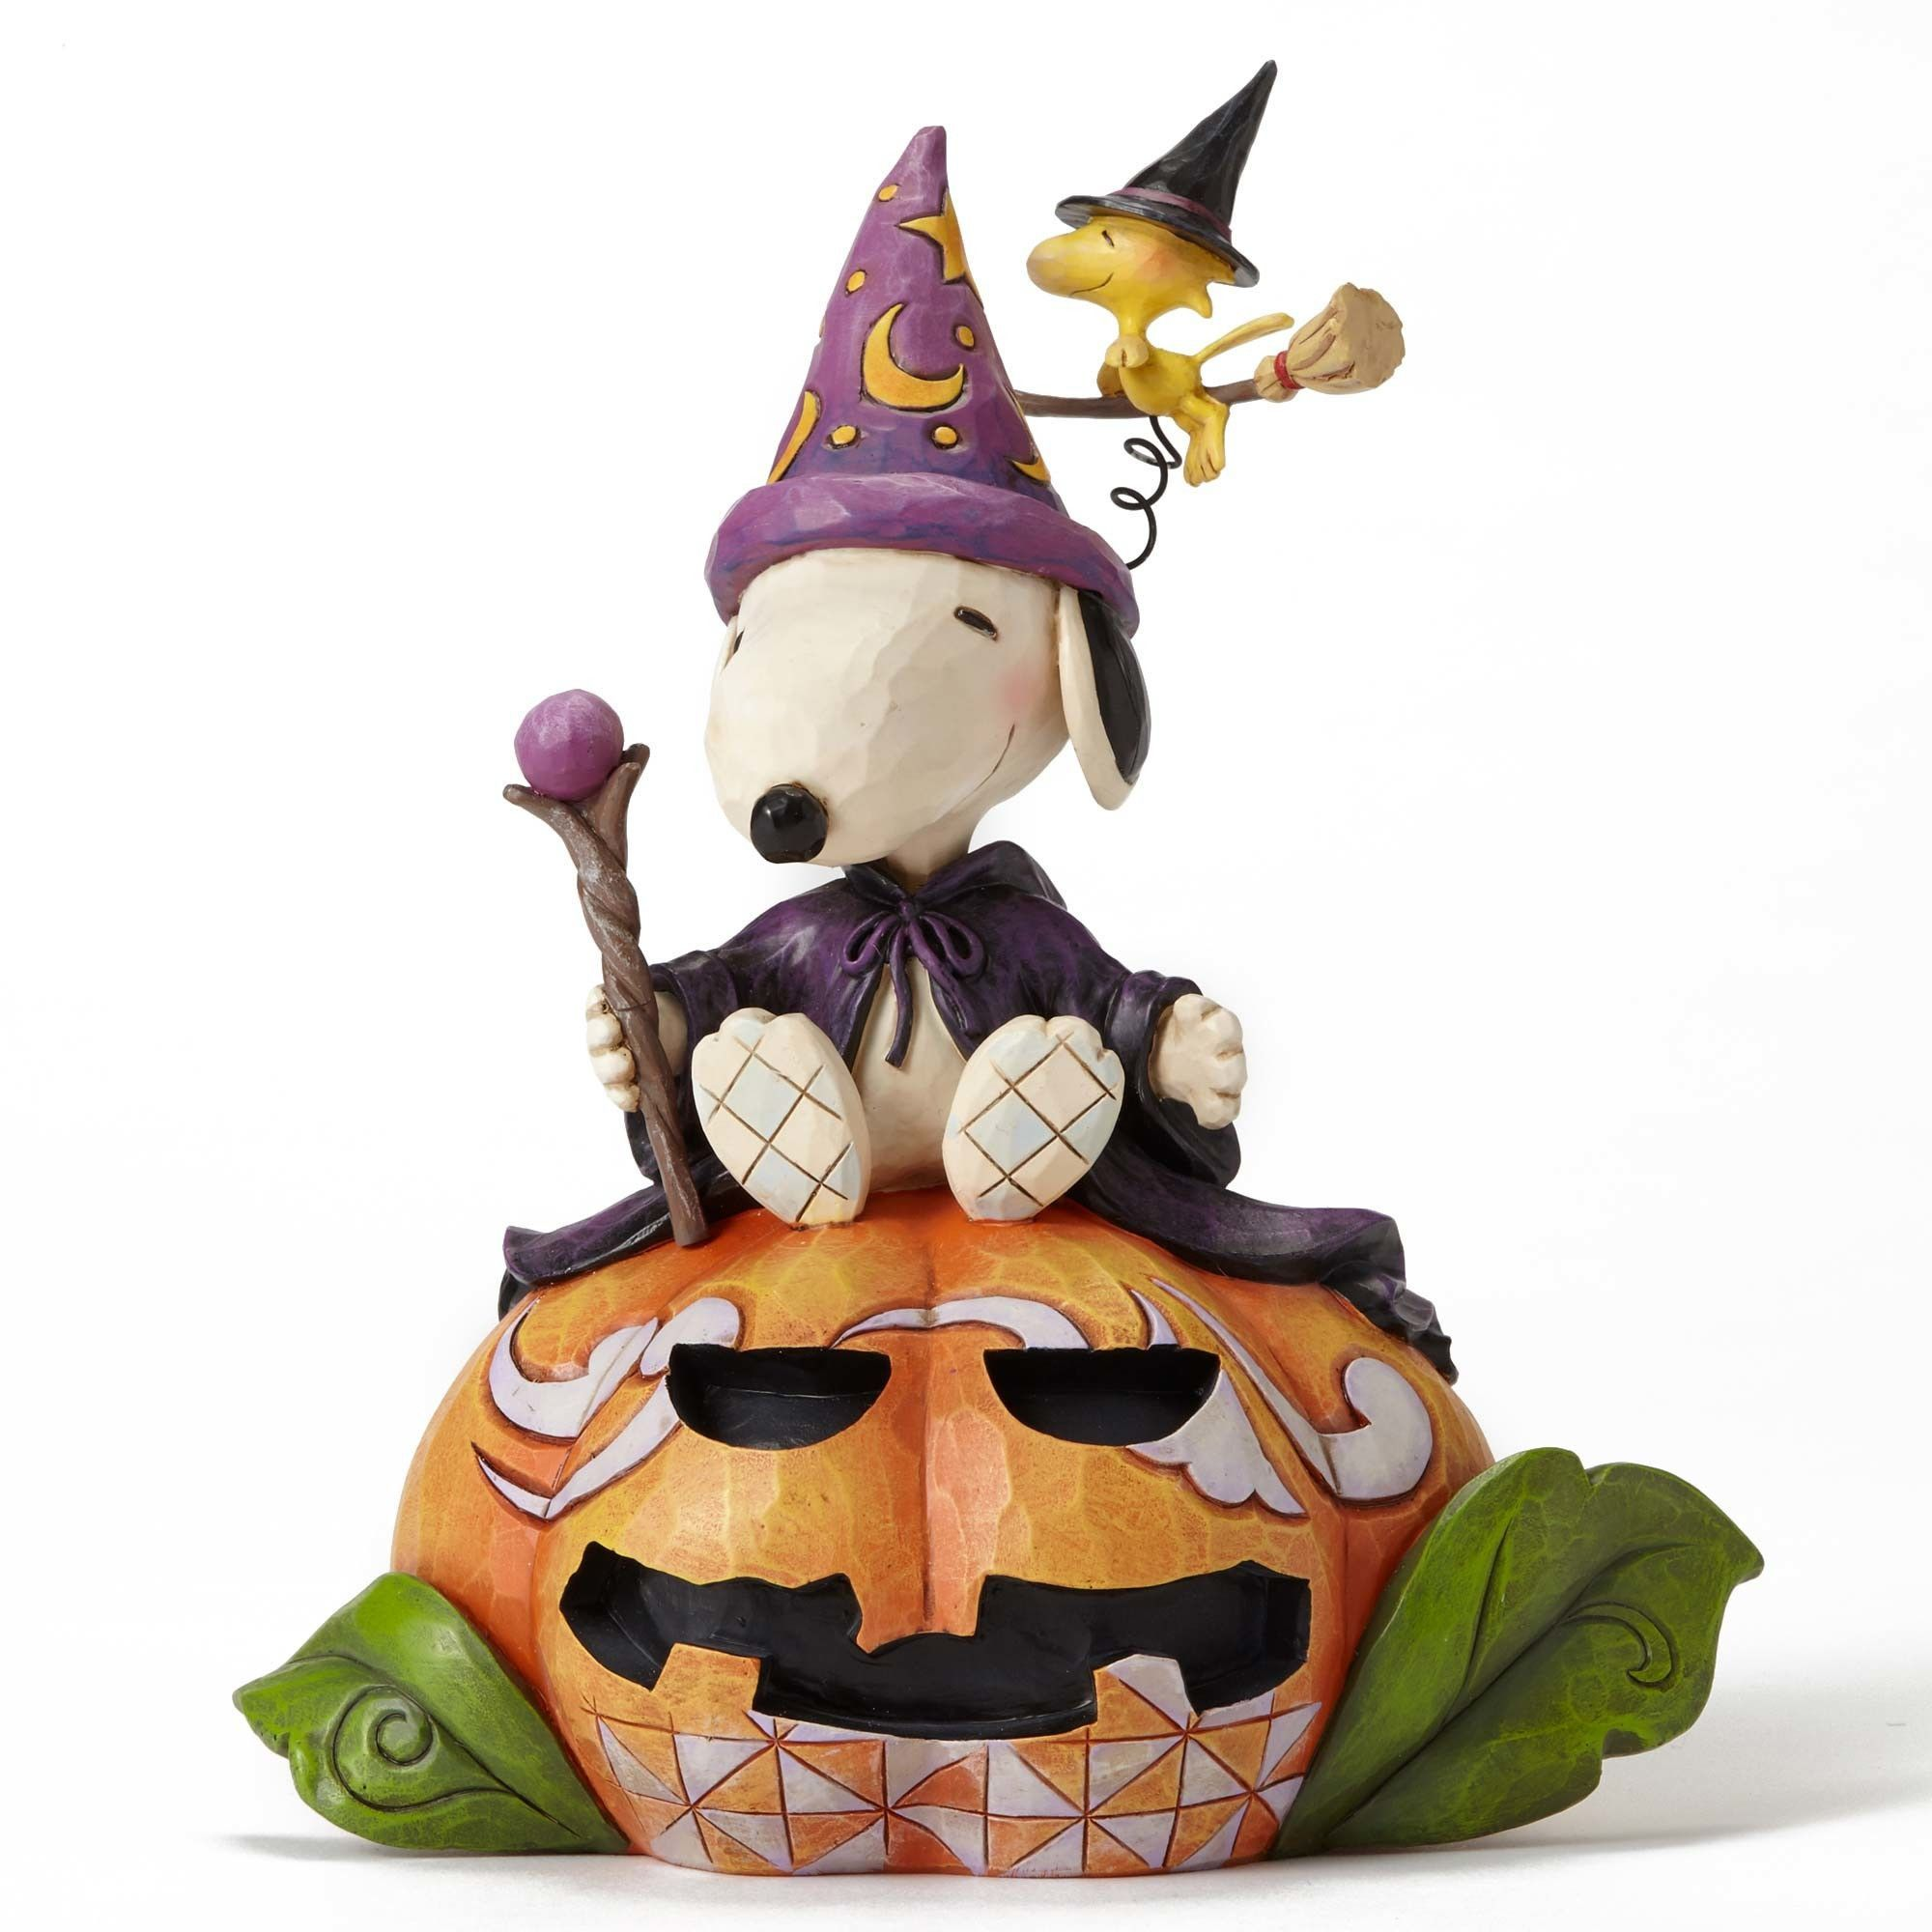 Item Number: 4052724 Material: Stone Resin Dimensions: 7.4 in H x 4.72 in W x 6.3 in L Wizard Snoopy along with Flying Witch Woodstock rest atop a jack-o-lantern in this colorful Halloween design feat